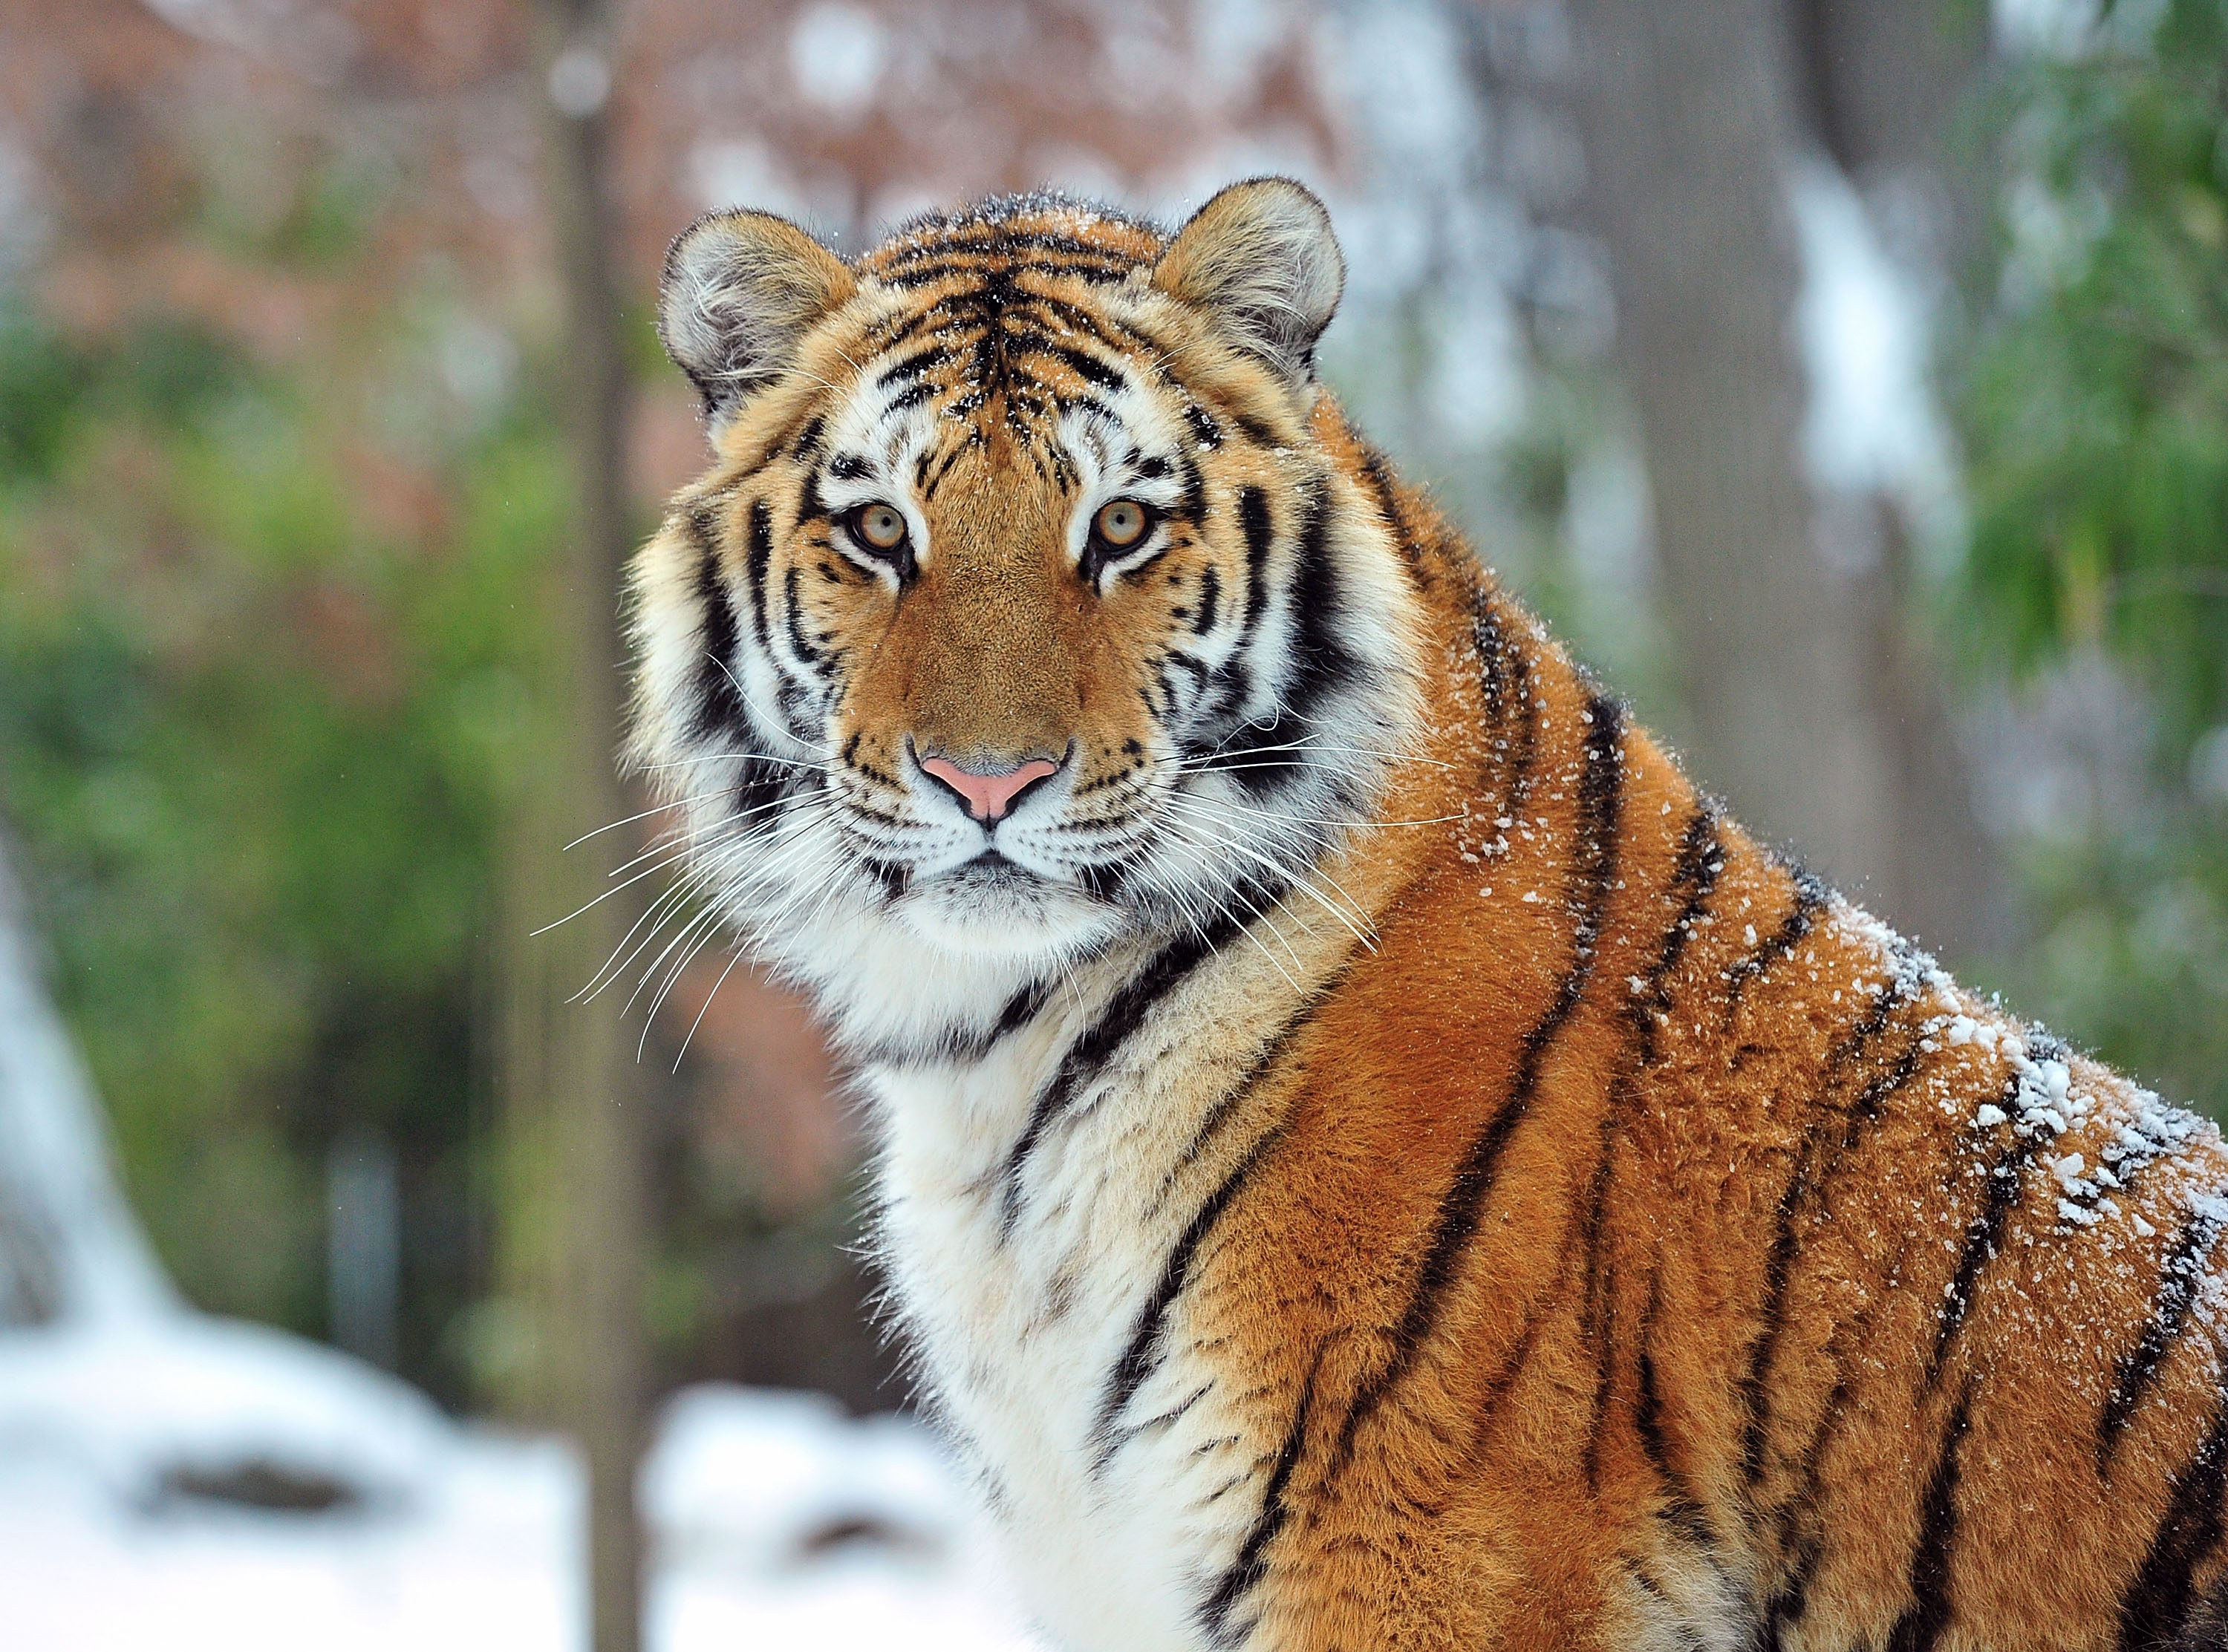 An orange and black tiger looks directly at the camera, its face in the center of the frame. Its pelt is lightly coated with snow; trees and plants are softly blurred in the background.